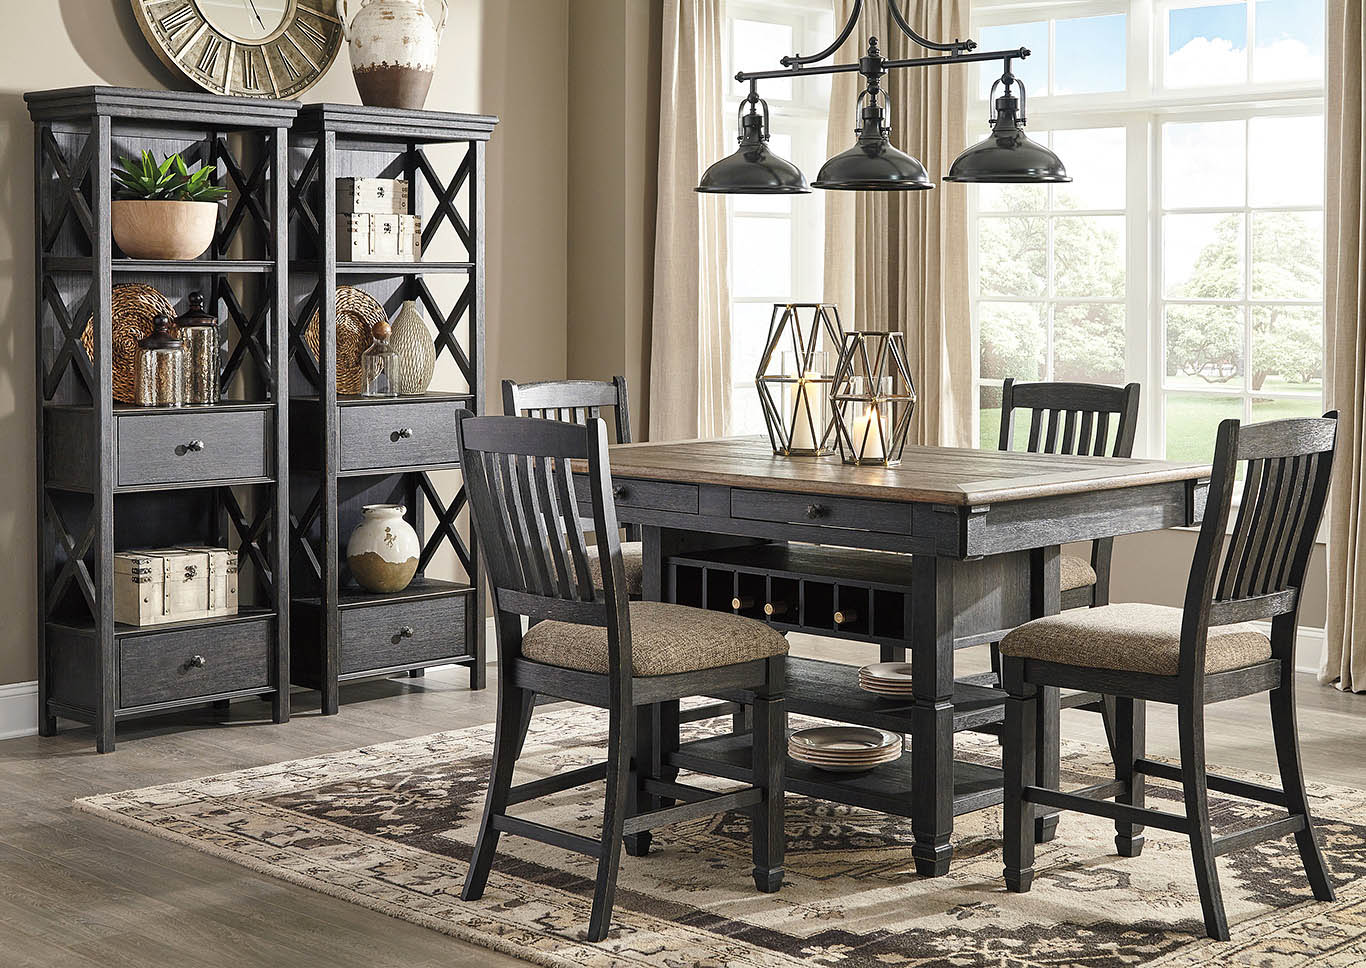 Tyler Creek Black/Grayish Brown 7 Piece Counter Height Dining Set w/4 Counter Height Chairs & 2 Display Cabinets,Signature Design By Ashley